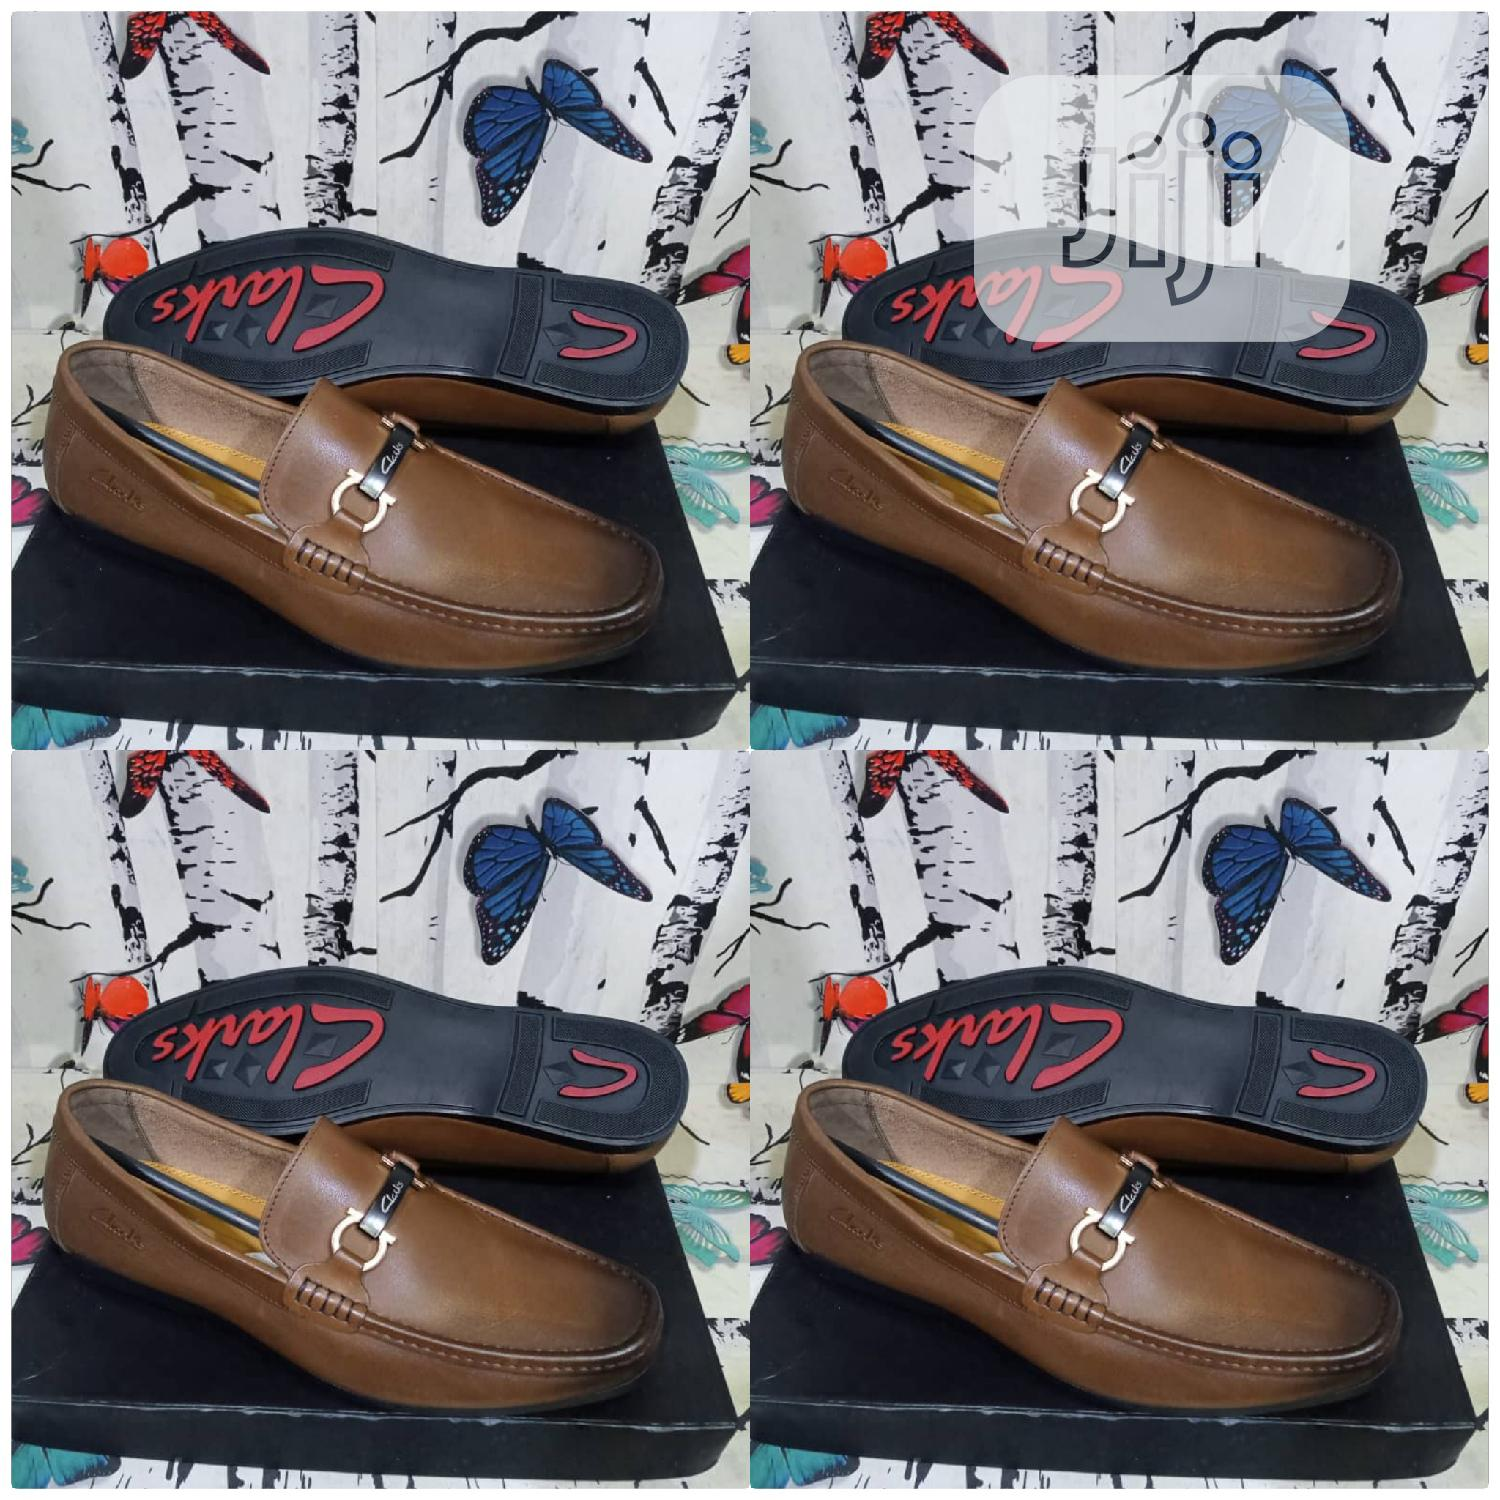 Clarks Loafers Shoes Original Quality | Shoes for sale in Surulere, Lagos State, Nigeria